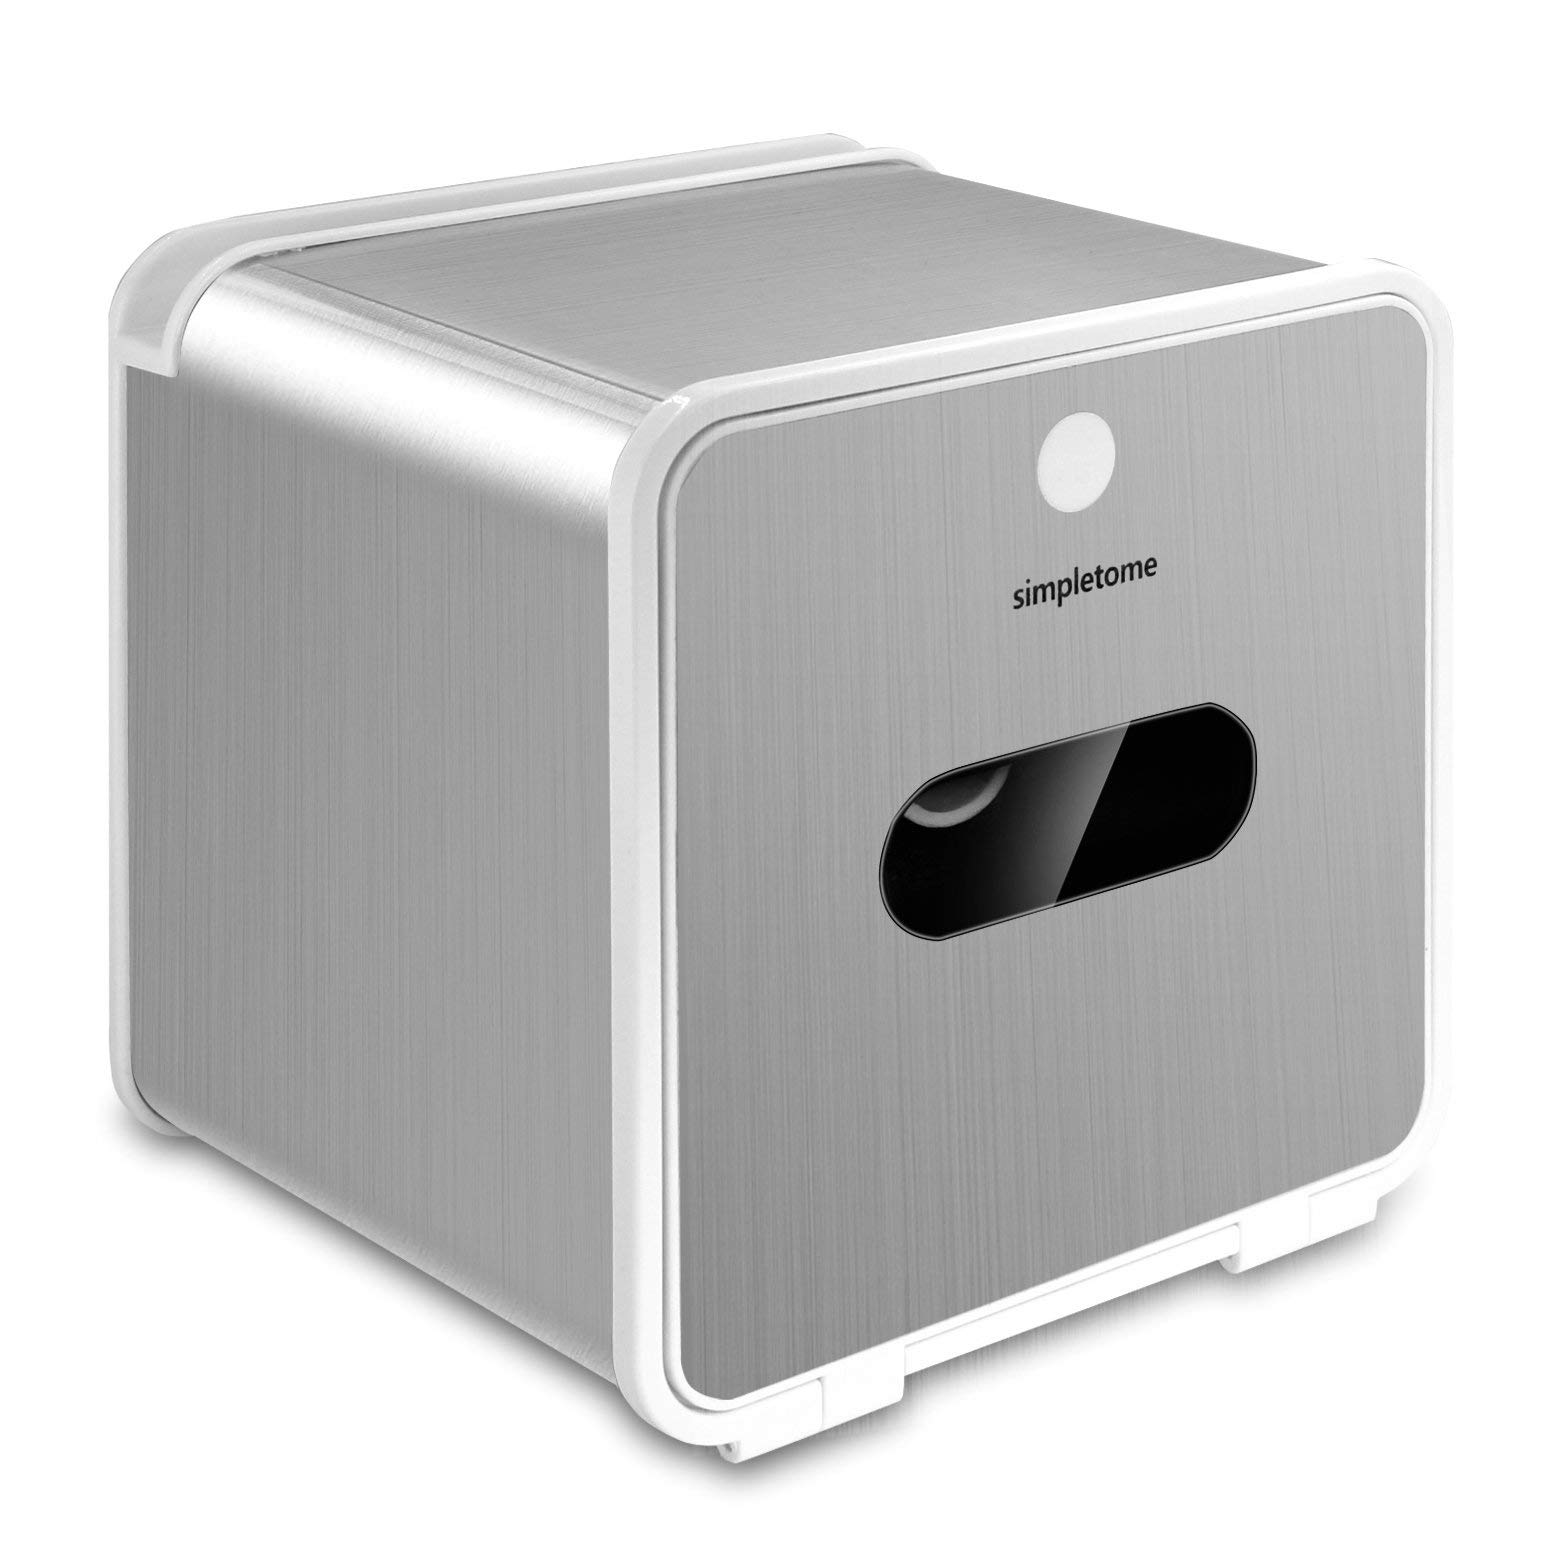 simpletome Adhesive Toilet Paper Holder with Shelf for Phone Tablet PC Full Body Waterproof (SUS304+ABS)